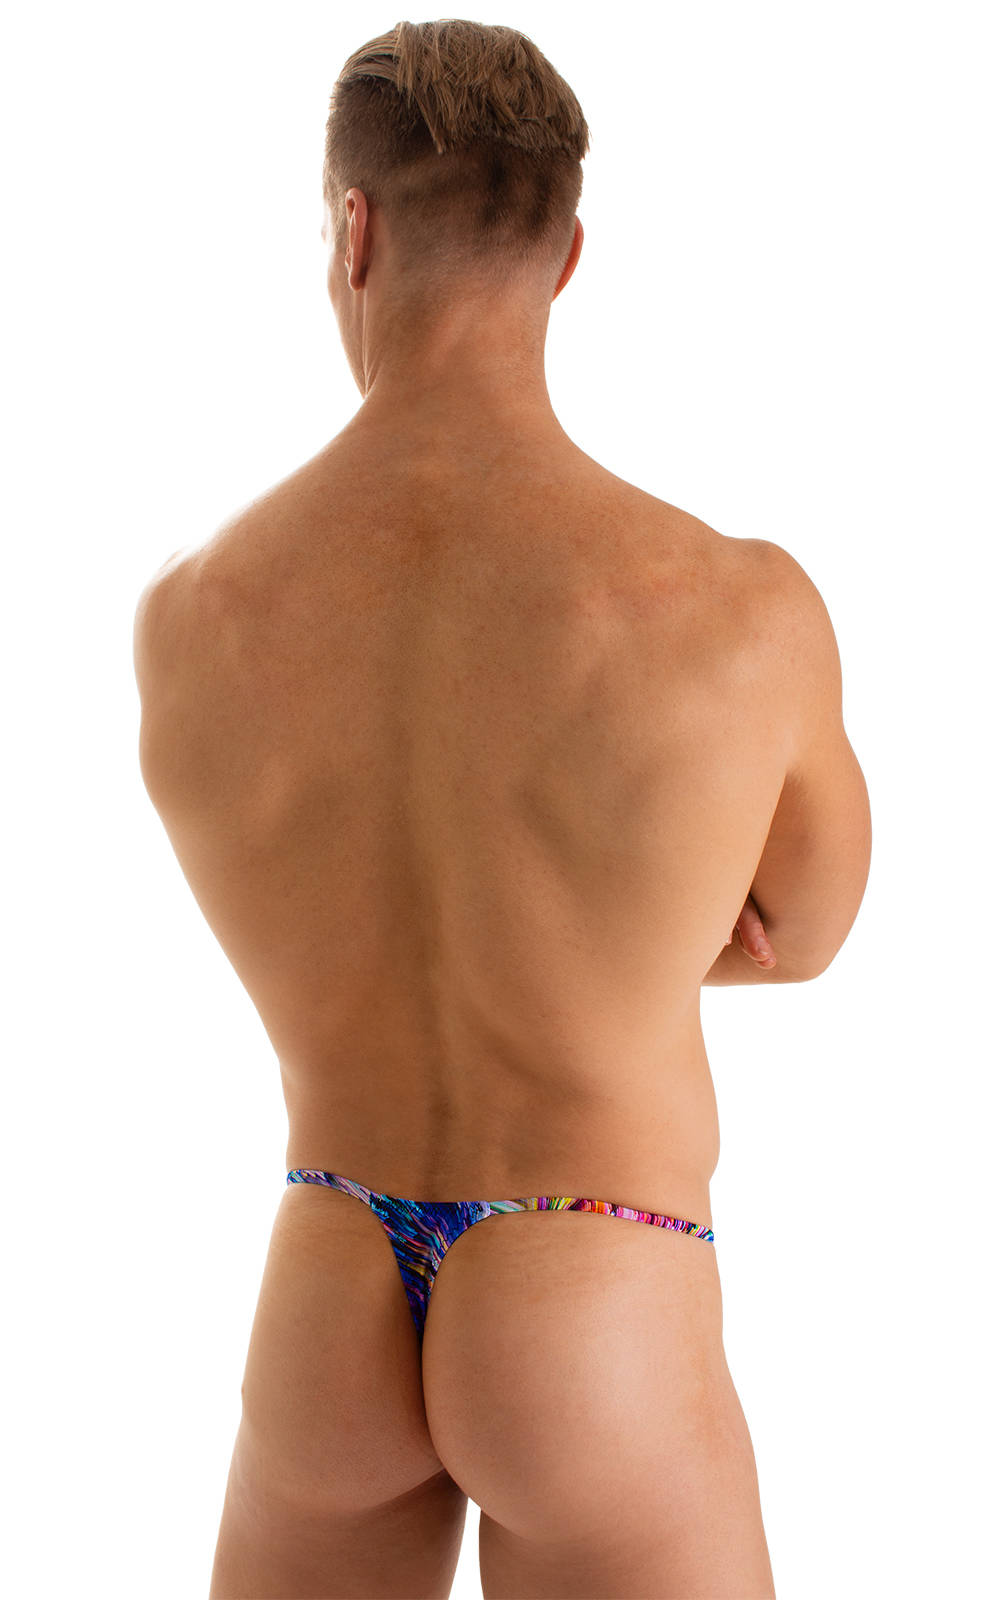 Smooth Pouch Skinny Sides Swim Thong in Illumine 2